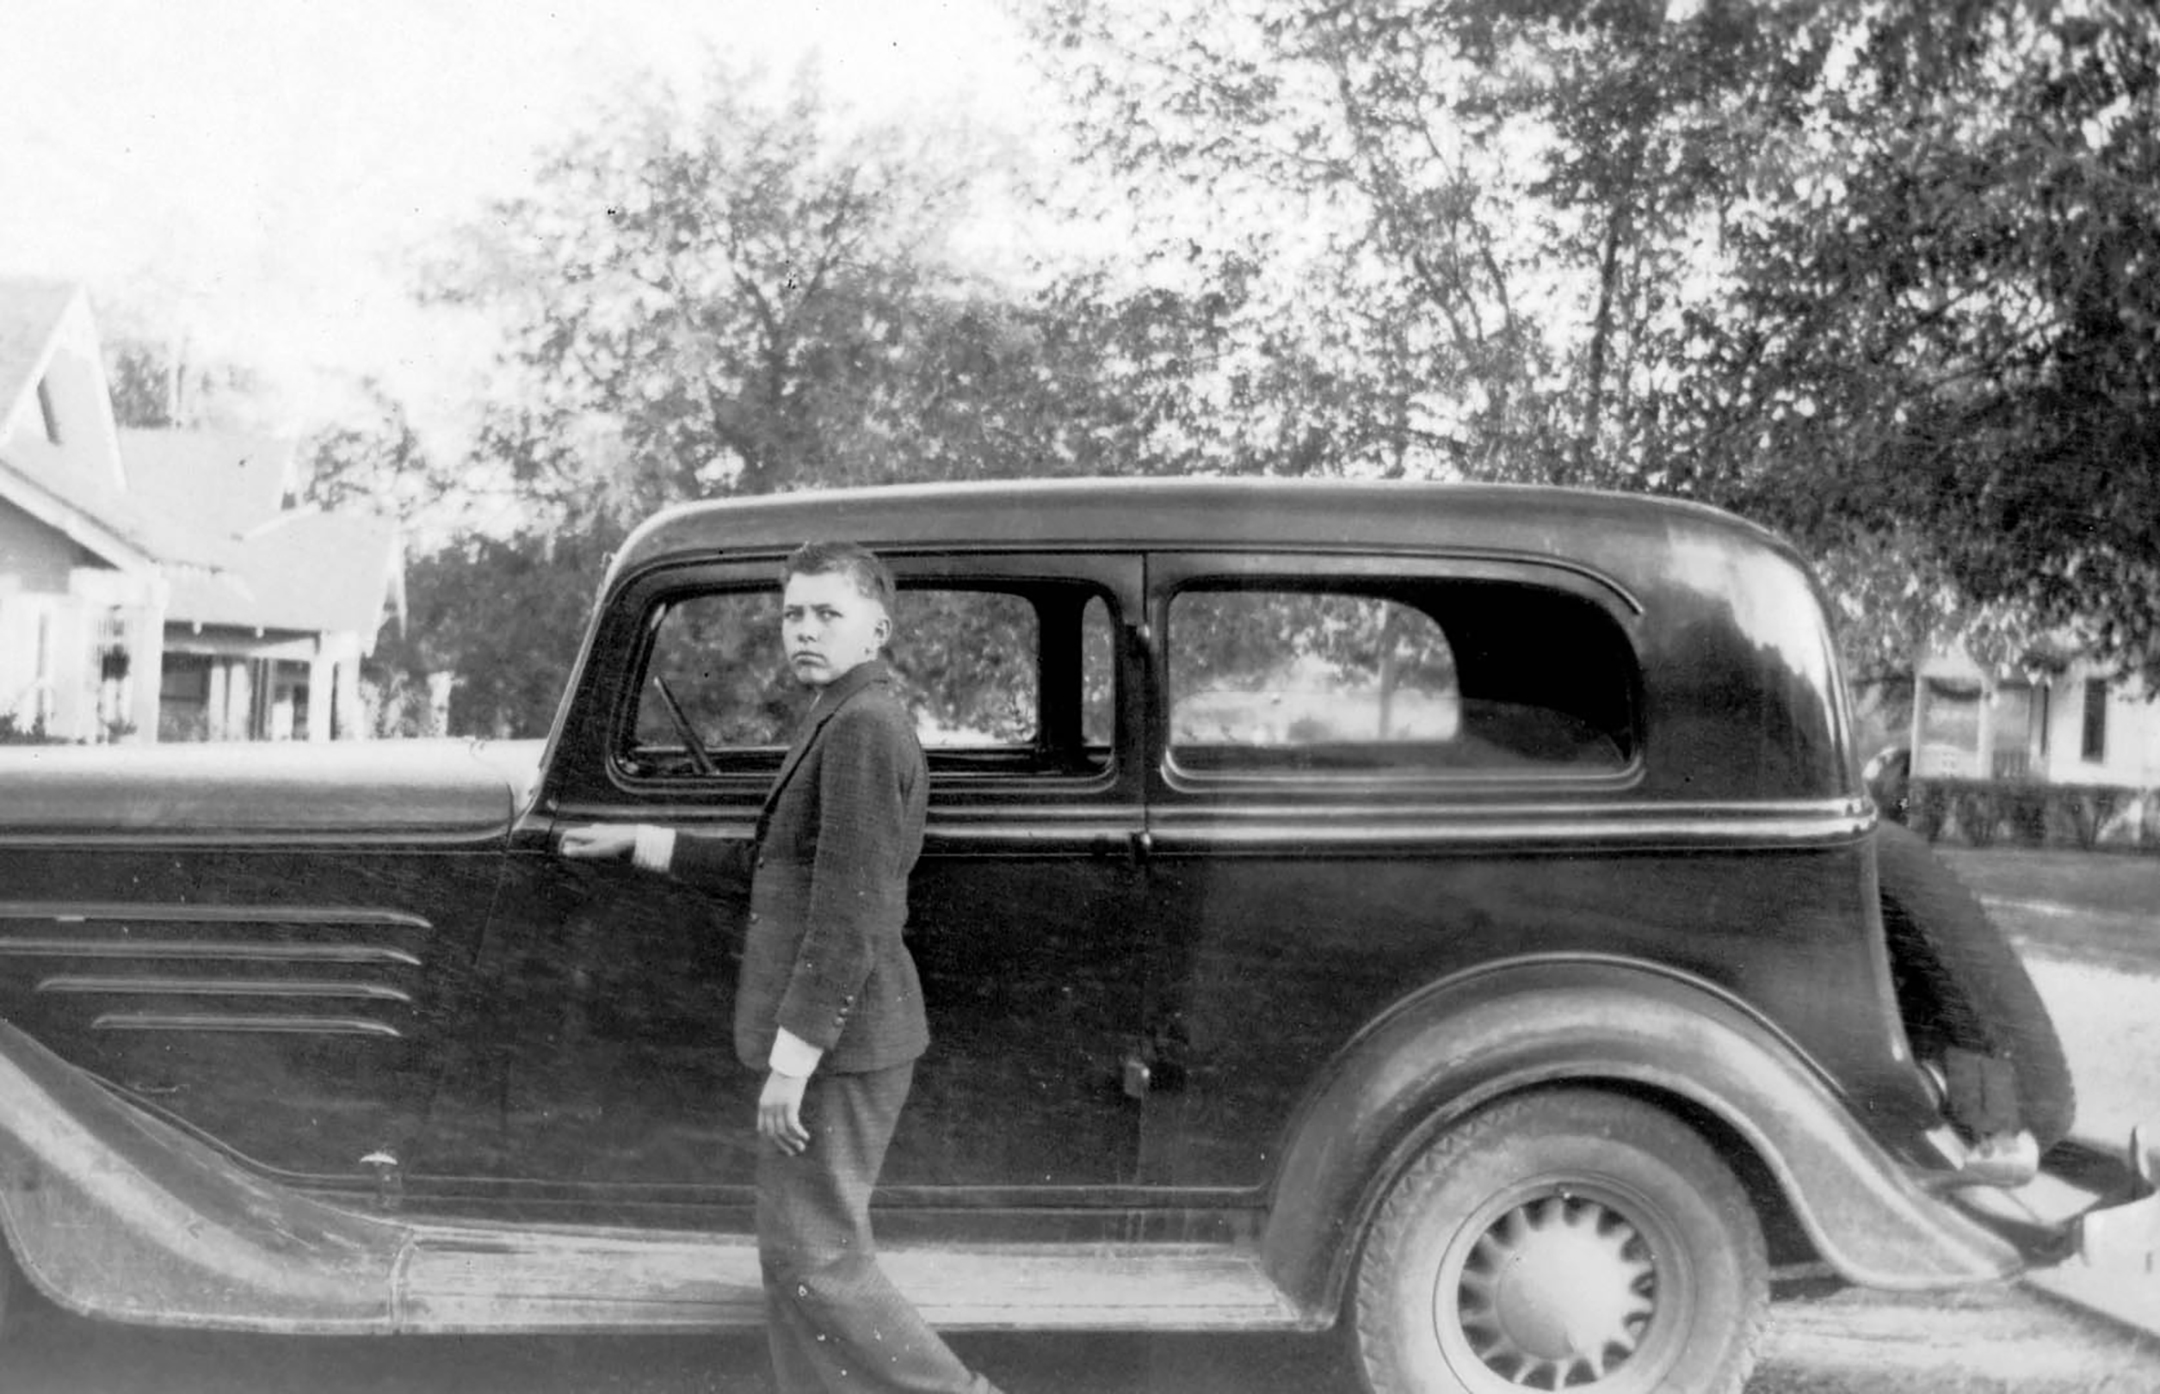 Carroll Shelby - 1938 - father's Ford - heritage photography - via Shelby America